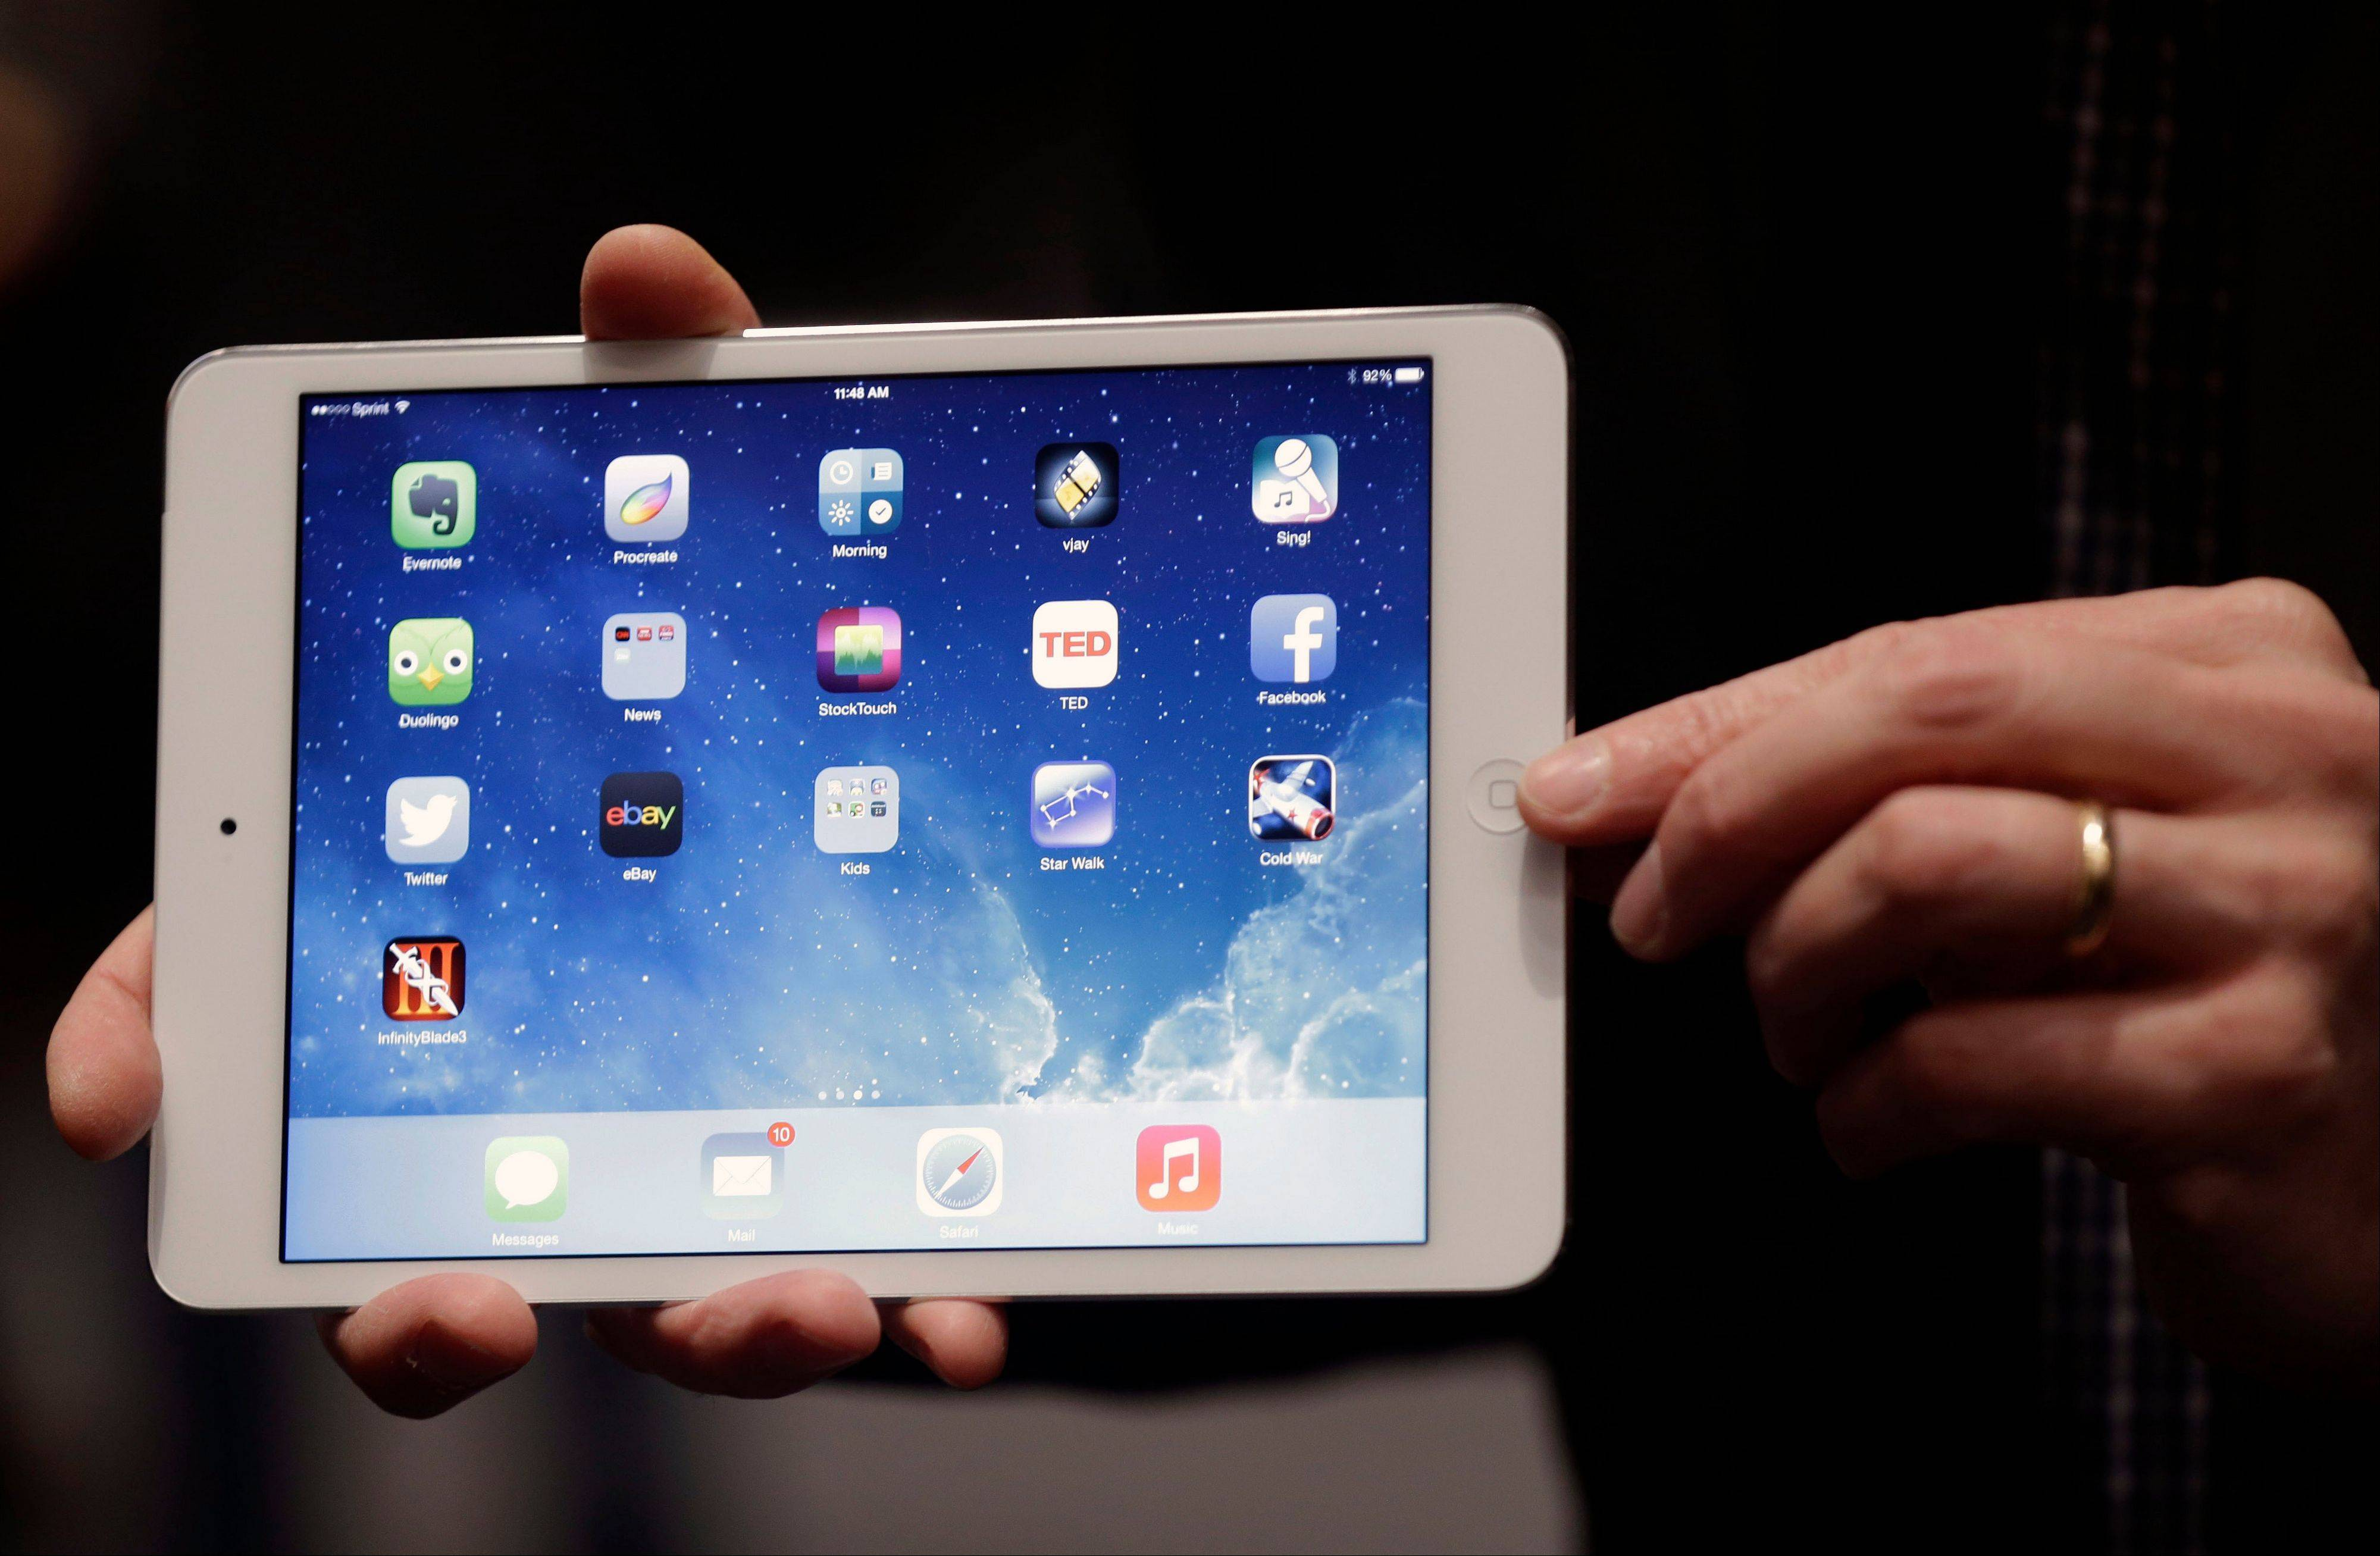 Apple began selling a new iPad Mini on Tuesday without the usual fanfare.